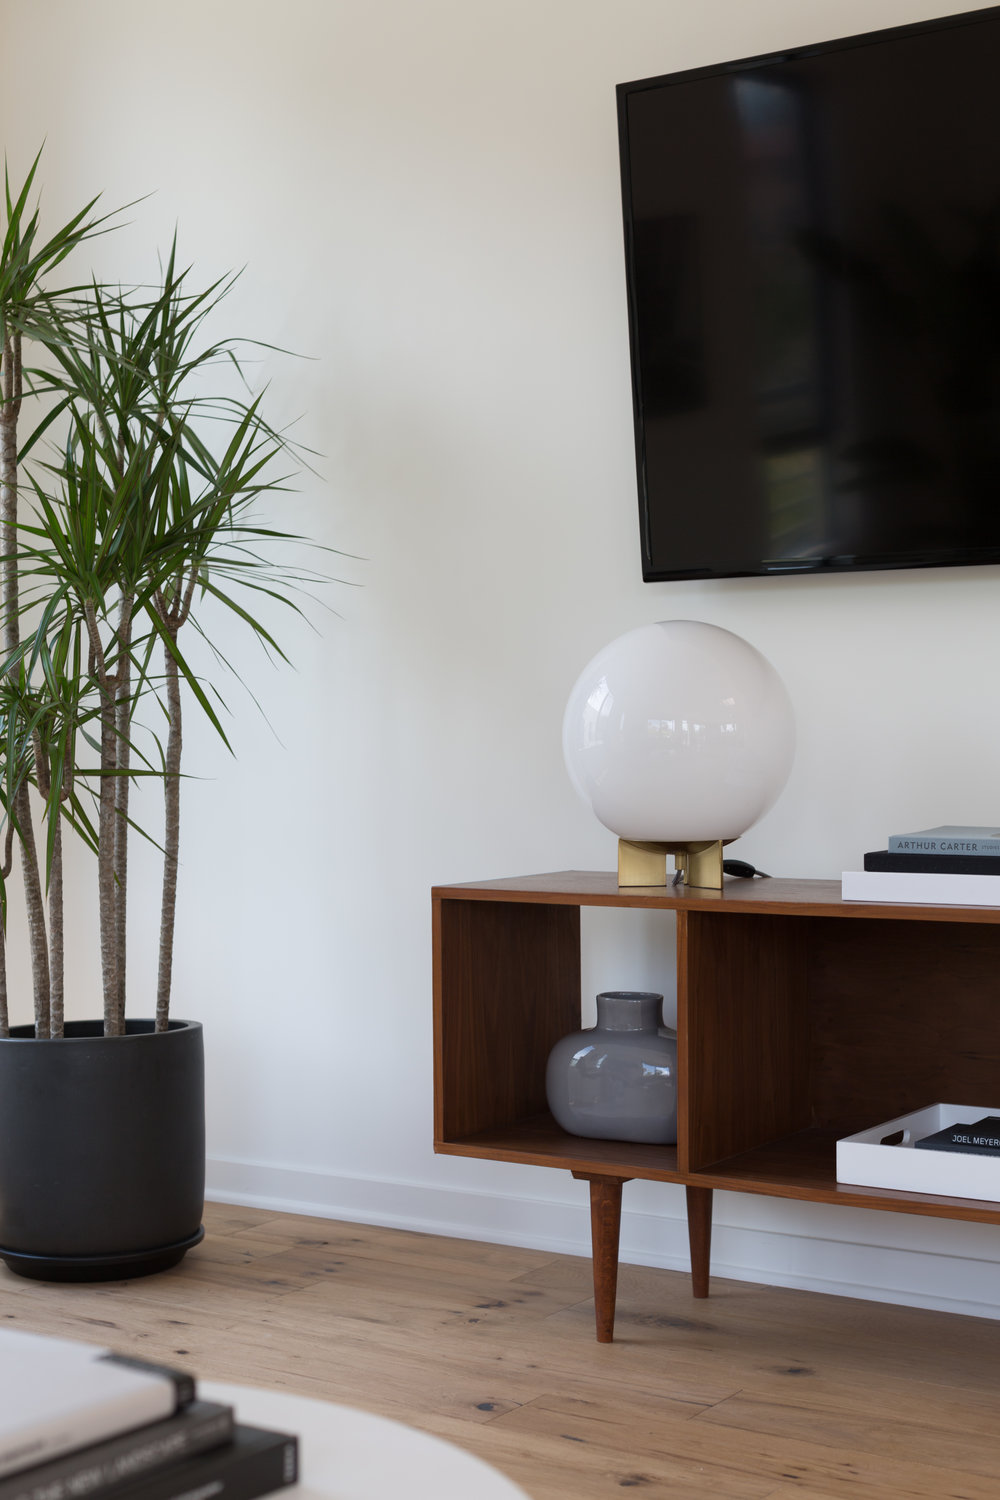 West Elmu0027s Glow Y Globe Table Lamp Echoes The Coffee Tableu0027s Spherical  Lines. A Dragon Plant Has A Dr. Suess Like Feel In The Corner. Pepeu0027s  Furniture In ...